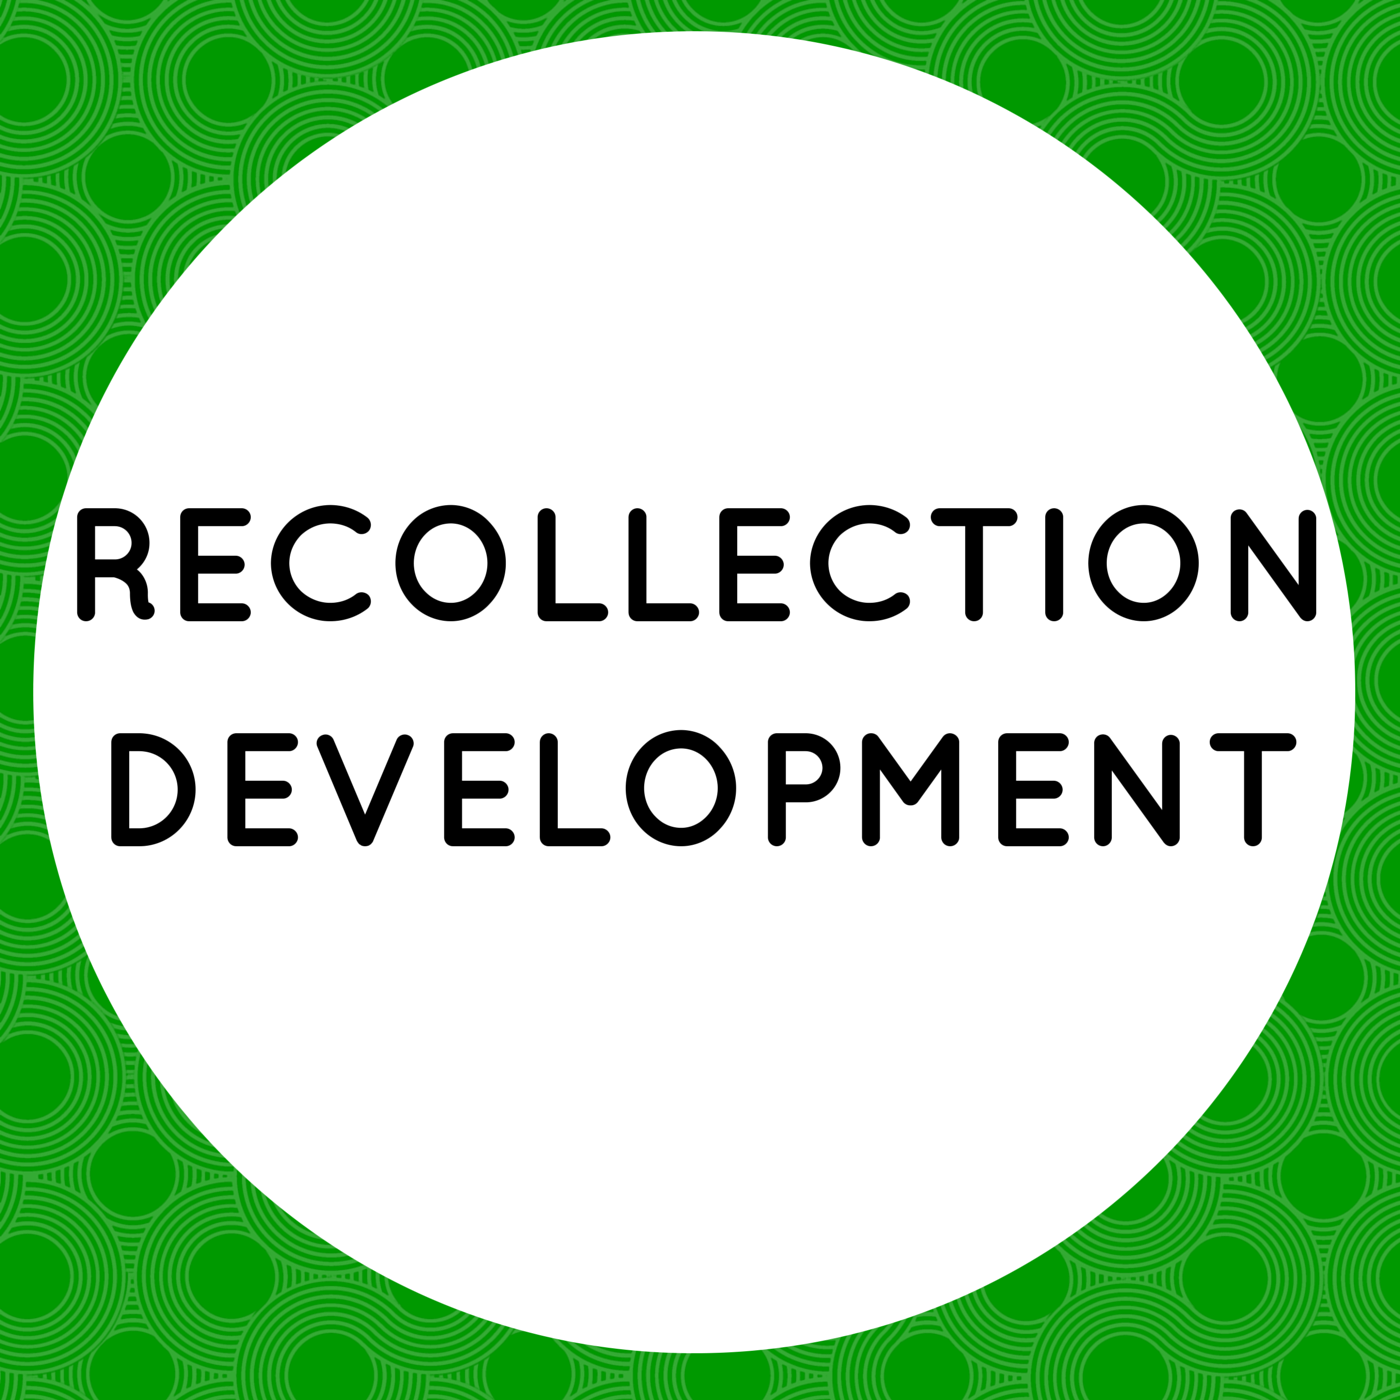 Recollection Development